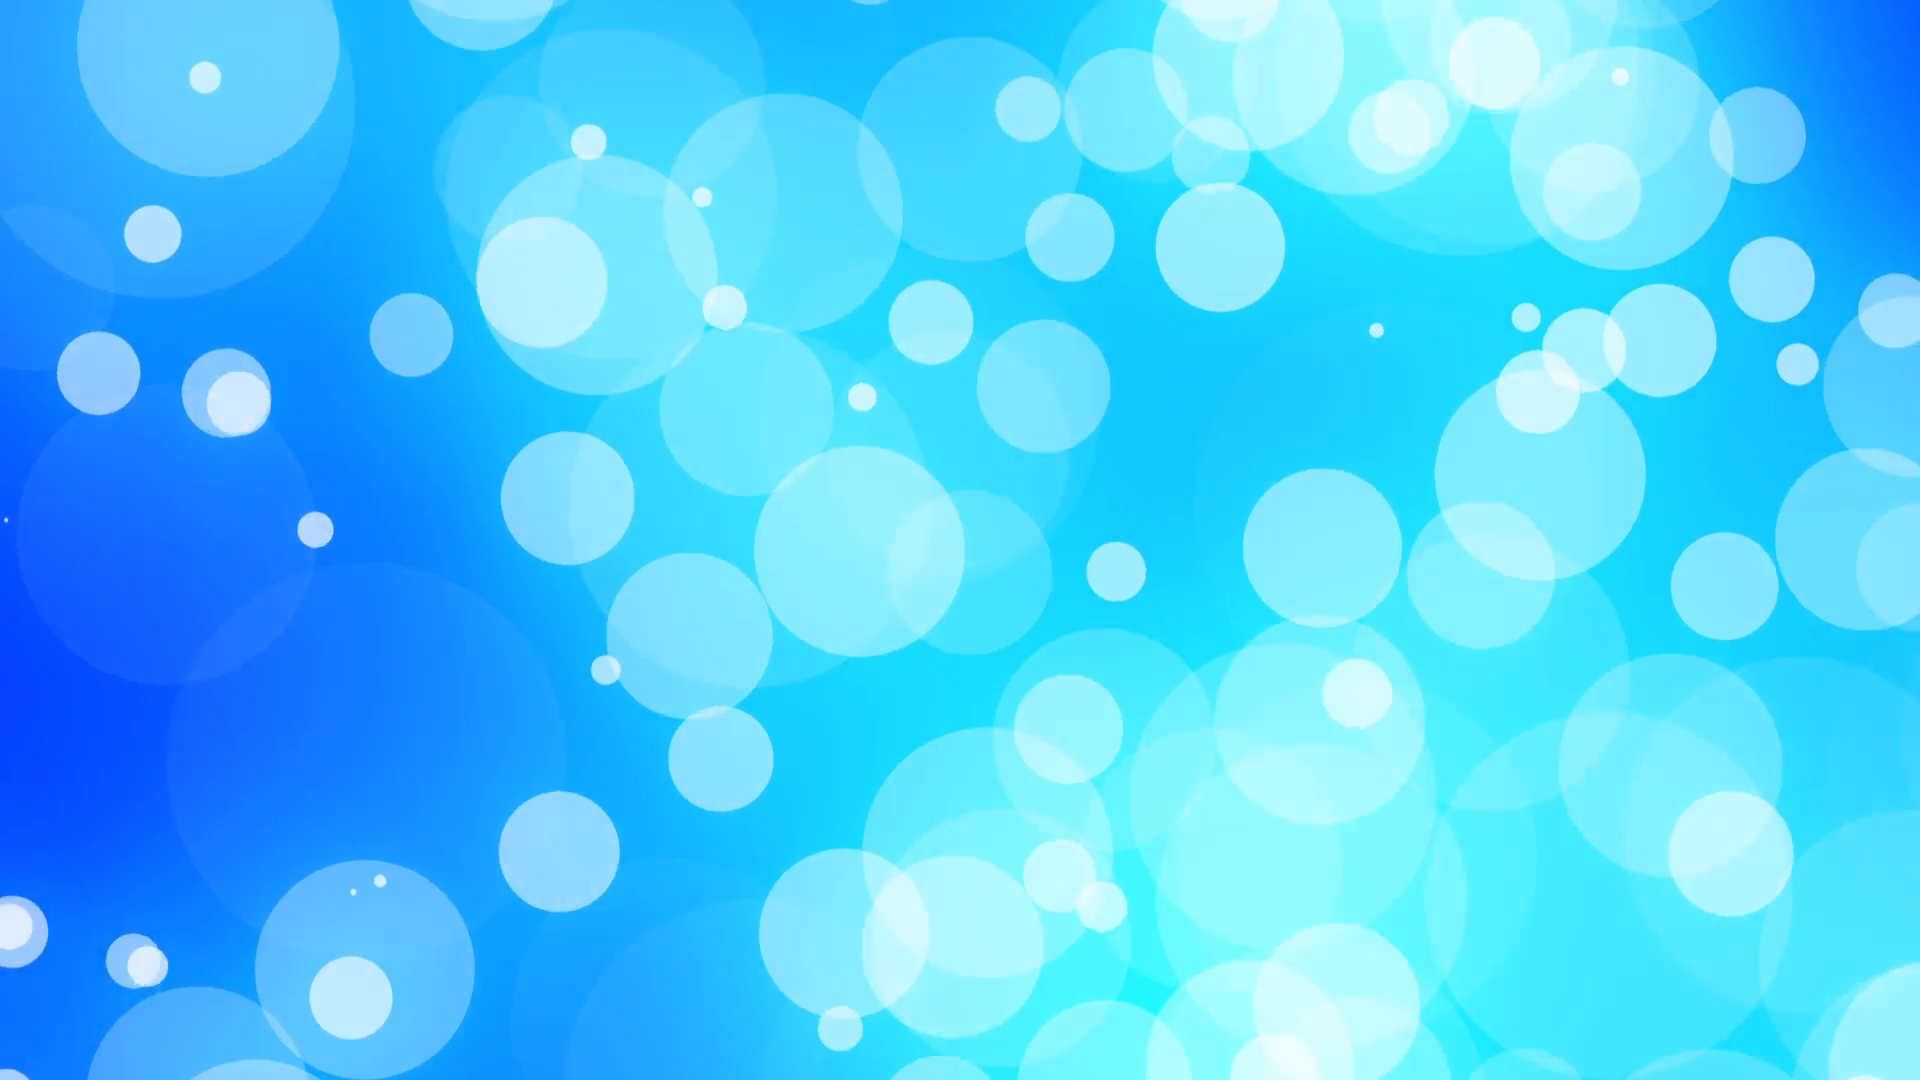 Light Blue Moving Circles Psychedelic Abstract Vj Background